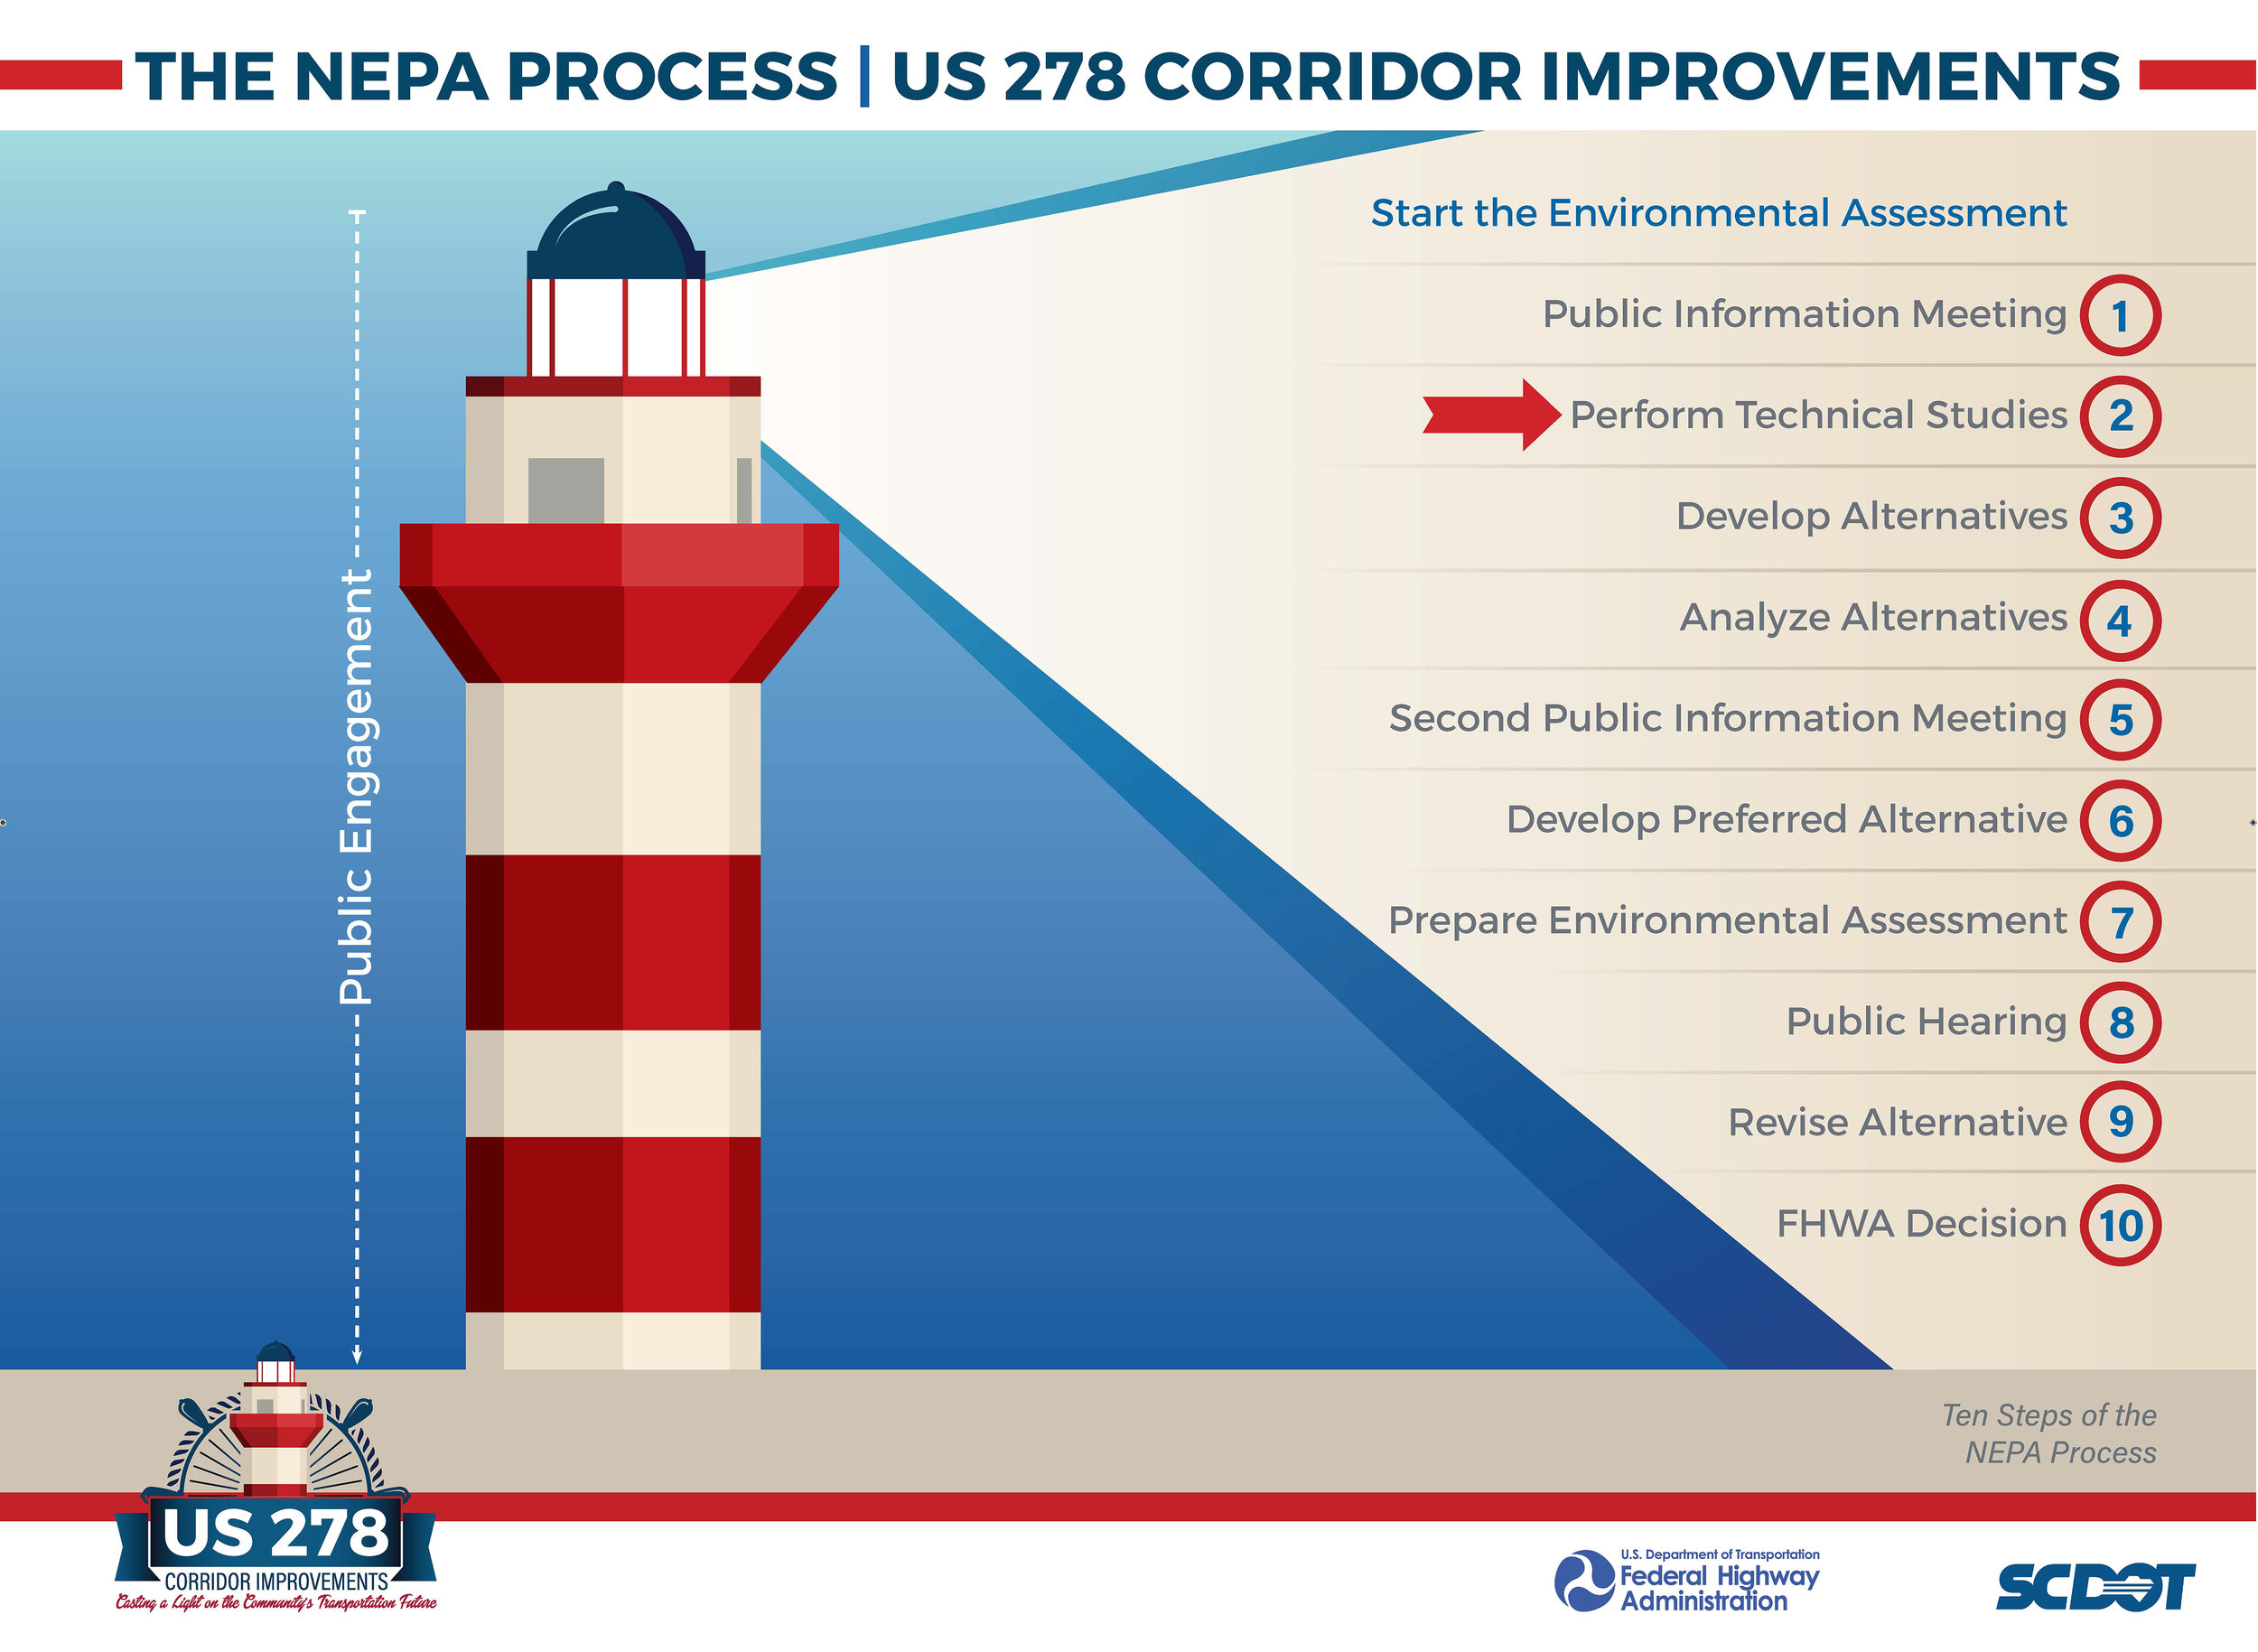 SCDOT_US278_48x36 Board_NEPA Process_2_small.jpg